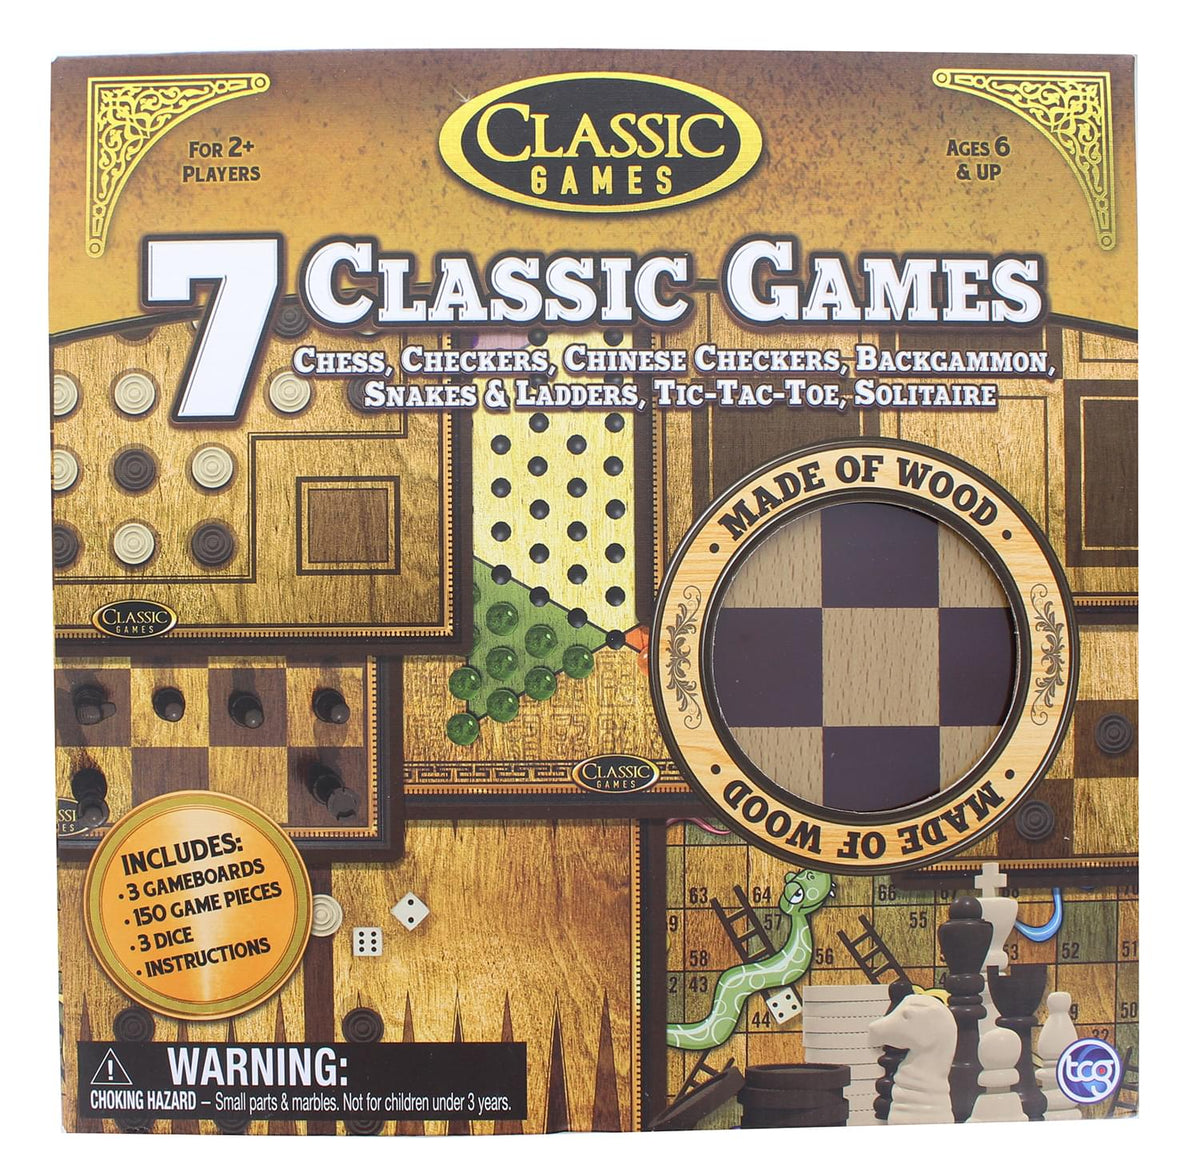 Classic Games Wood 7 Classic Games Set | 3 Boards & 150 Game Pieces